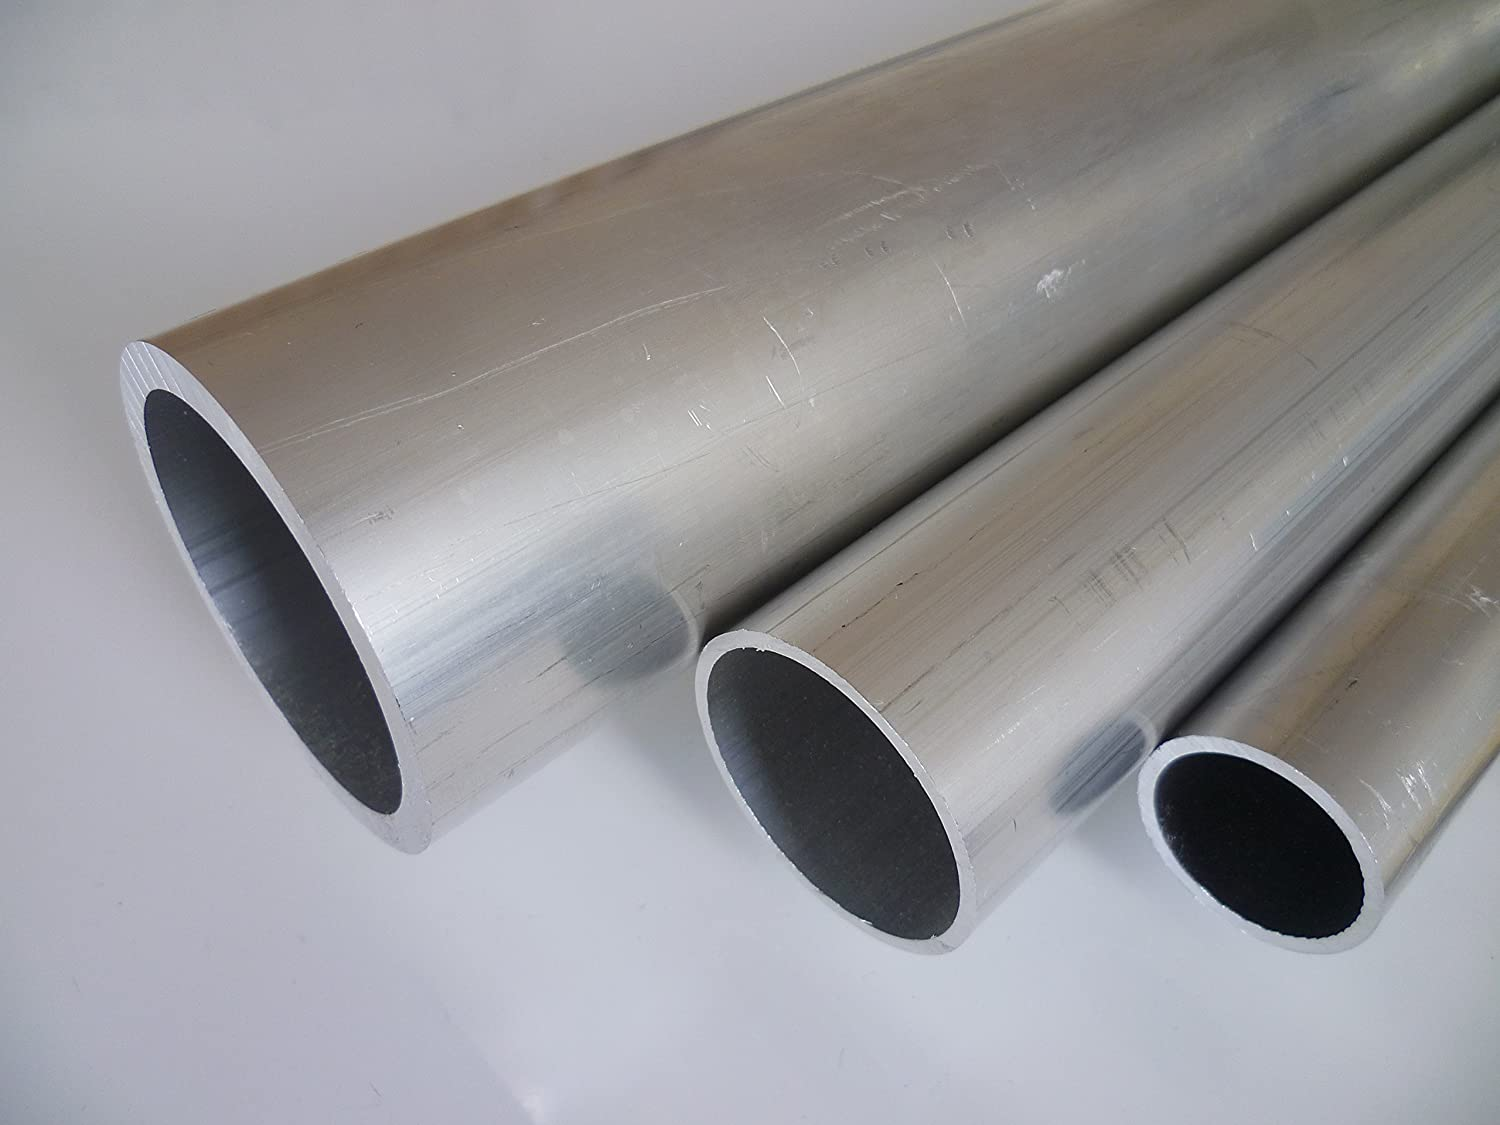 B&T Metall aluminium round tube in different sizes, material AlMgSi 0.5, F22 (EN-AW 6060)